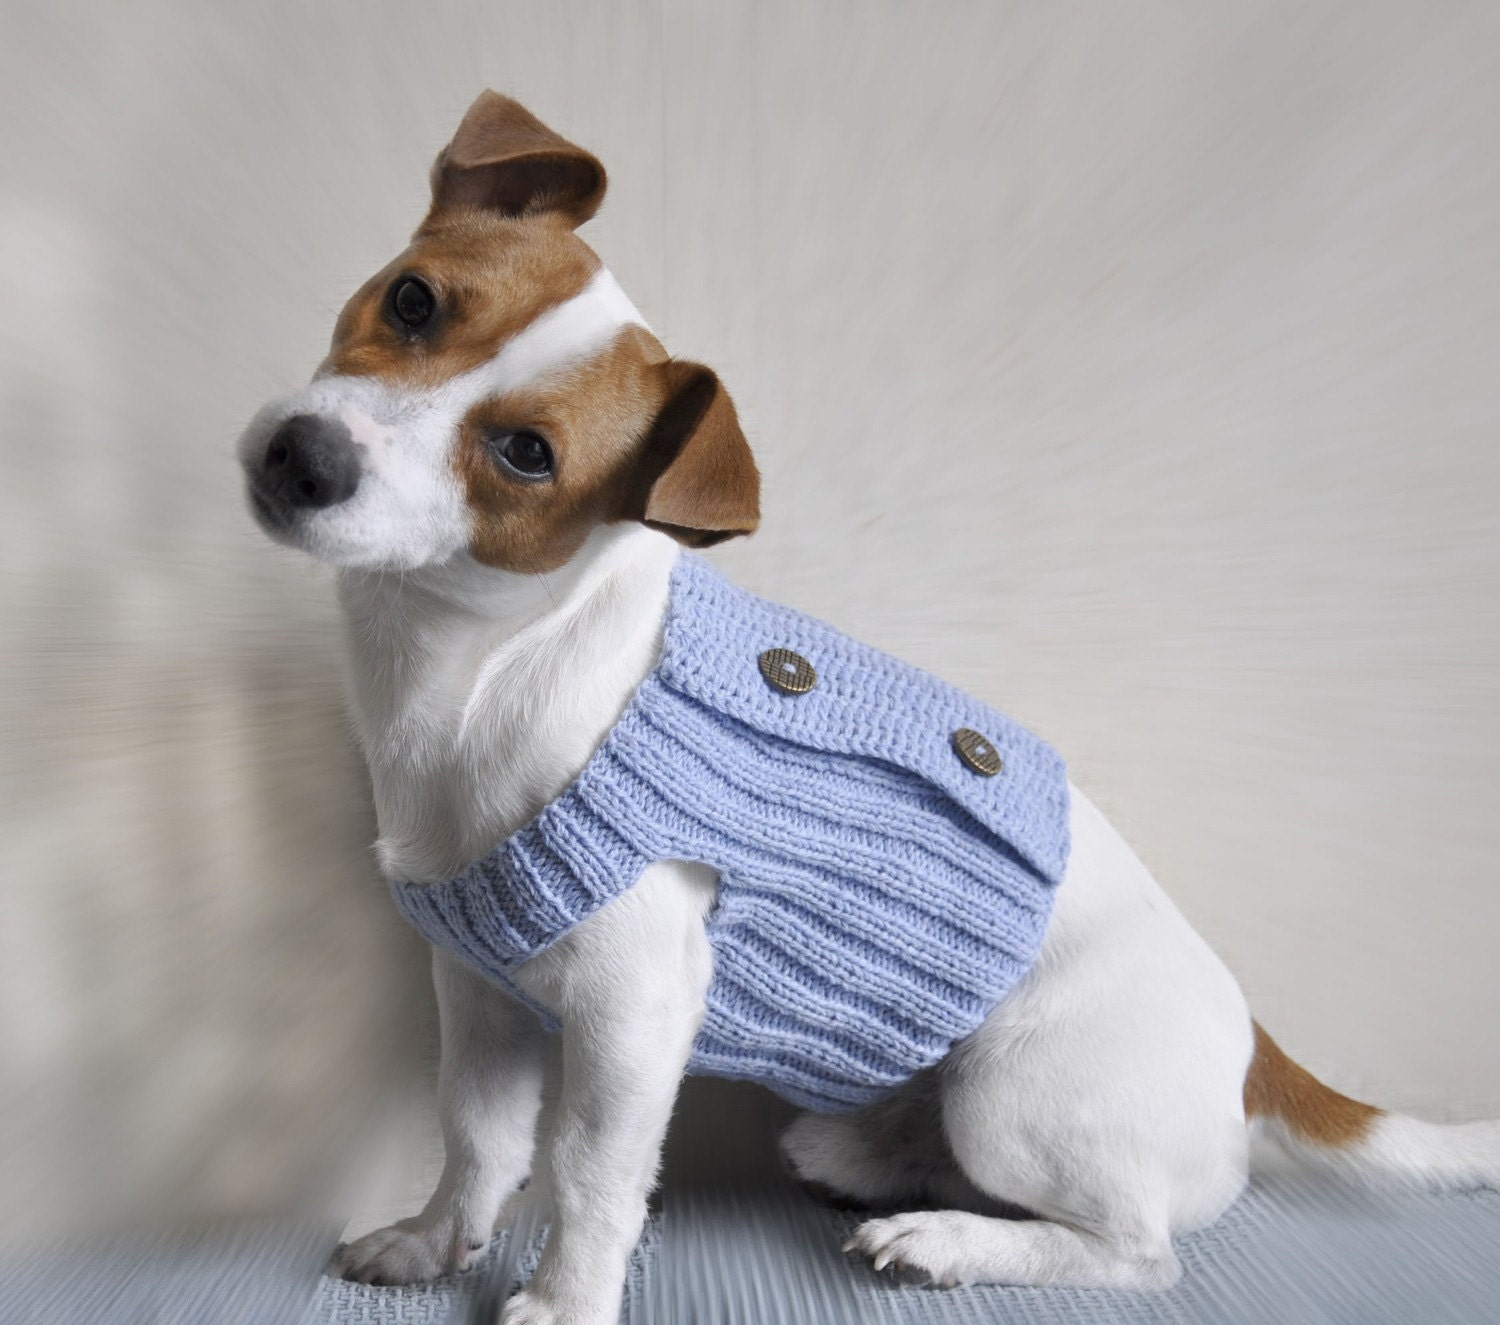 Knitting Pattern For Xs Dog Sweater : Popular items for dog apparel pattern on Etsy